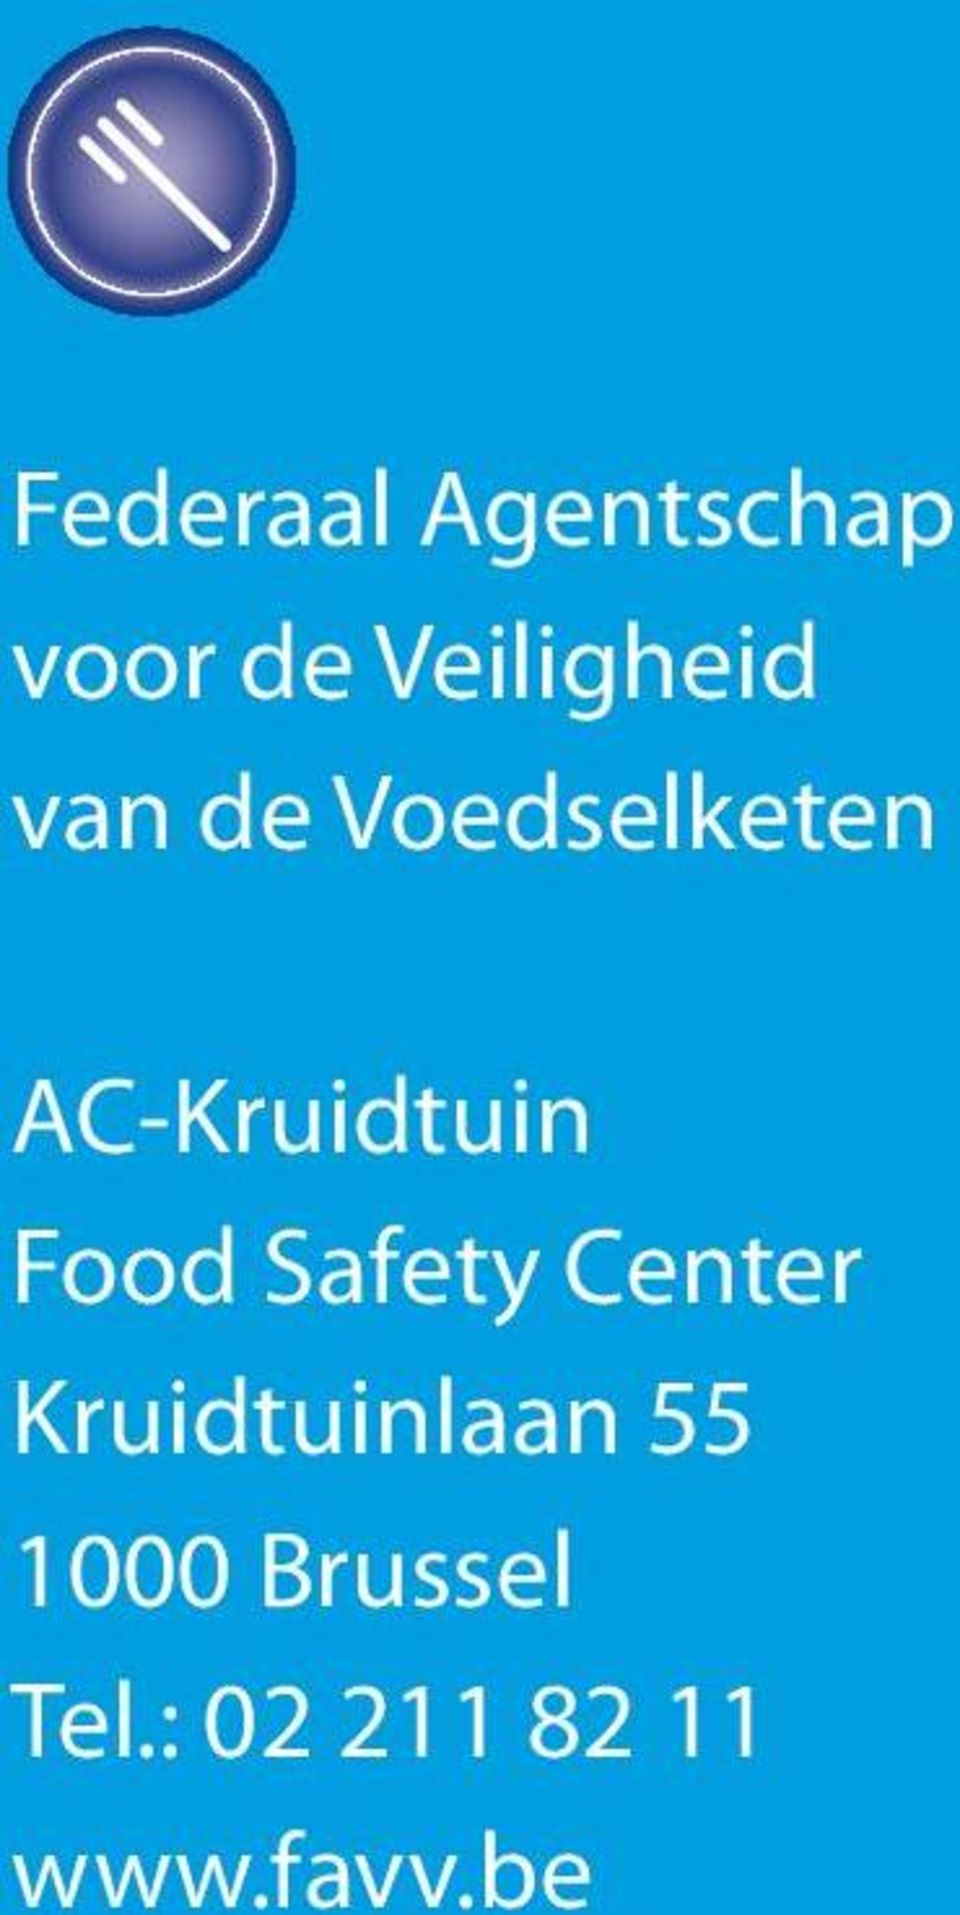 AC-Kruidtuin Food Safety Center